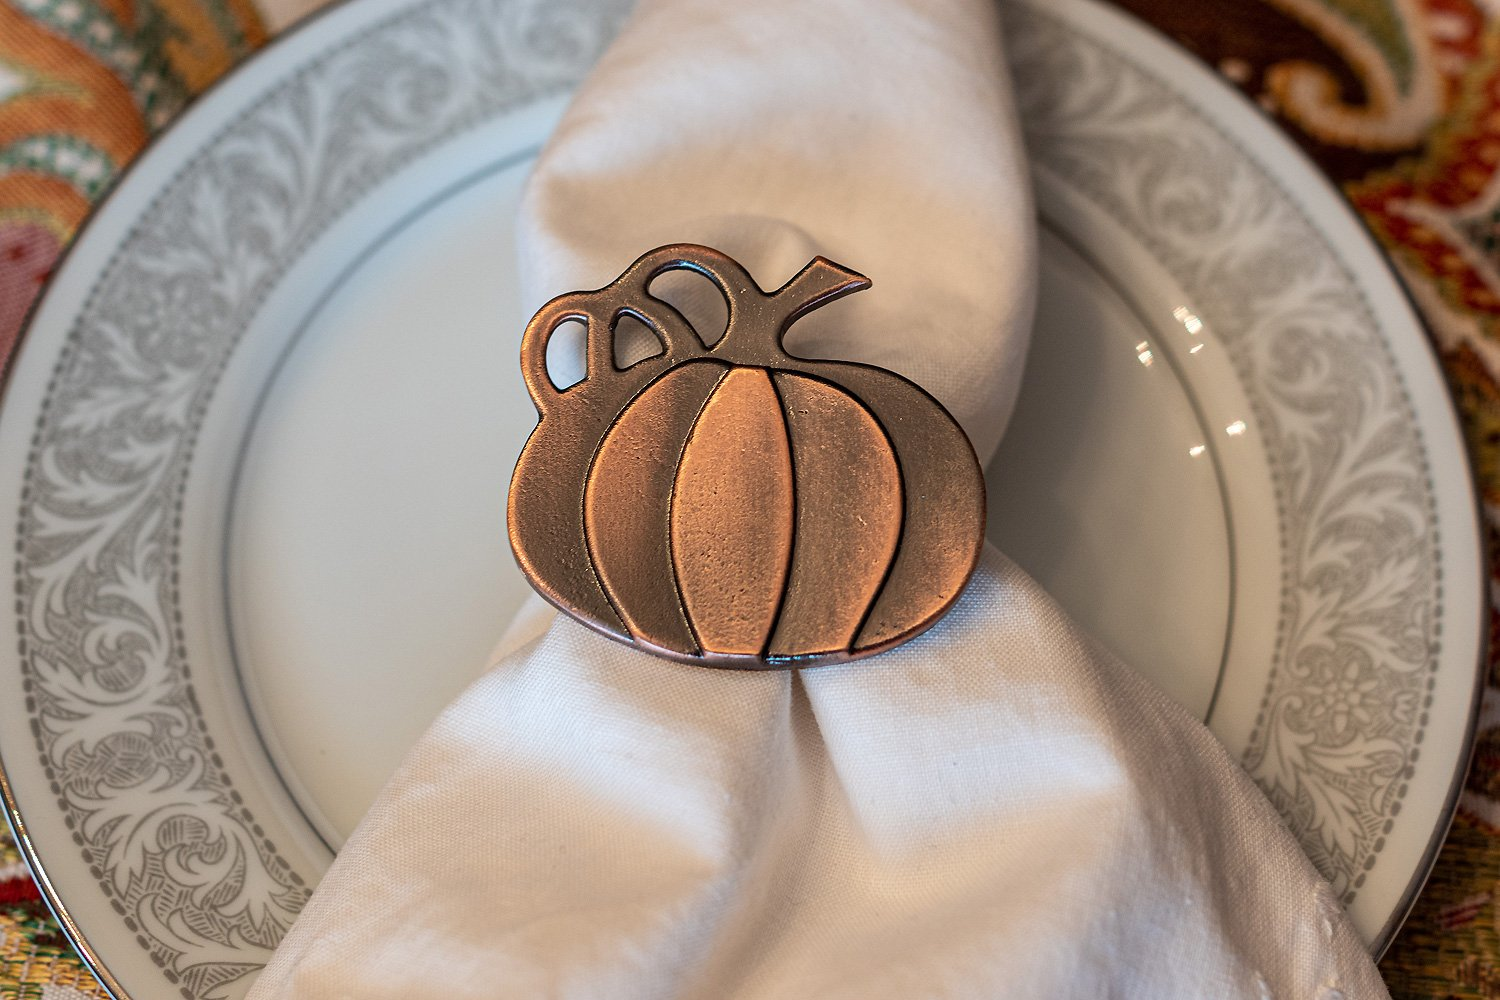 Pumpkin Napkin Rings For Thanksgiving Halloween Party Dinners Parties Set Of 4 Napkin Holders Walmart Com Walmart Com